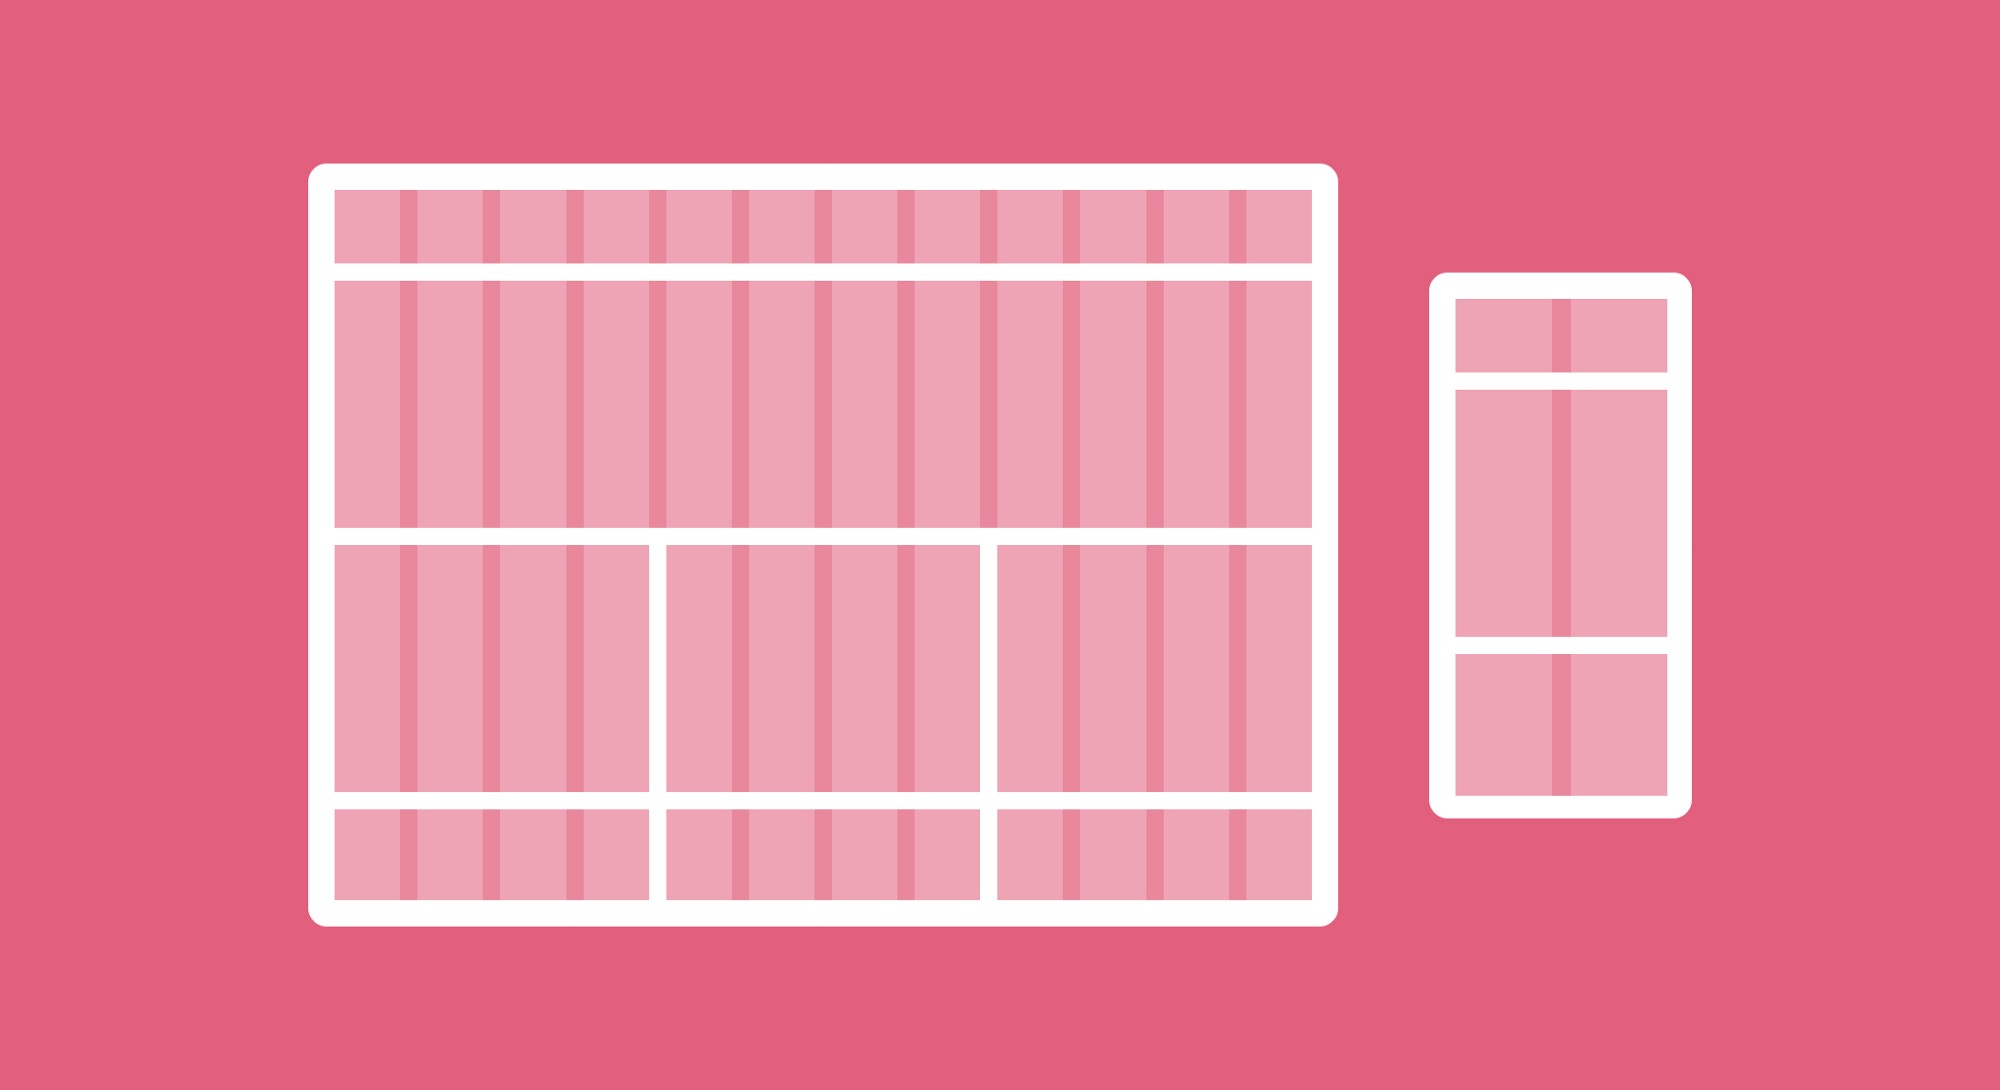 Getting started with grids in web design (designed by Monica Galvan)